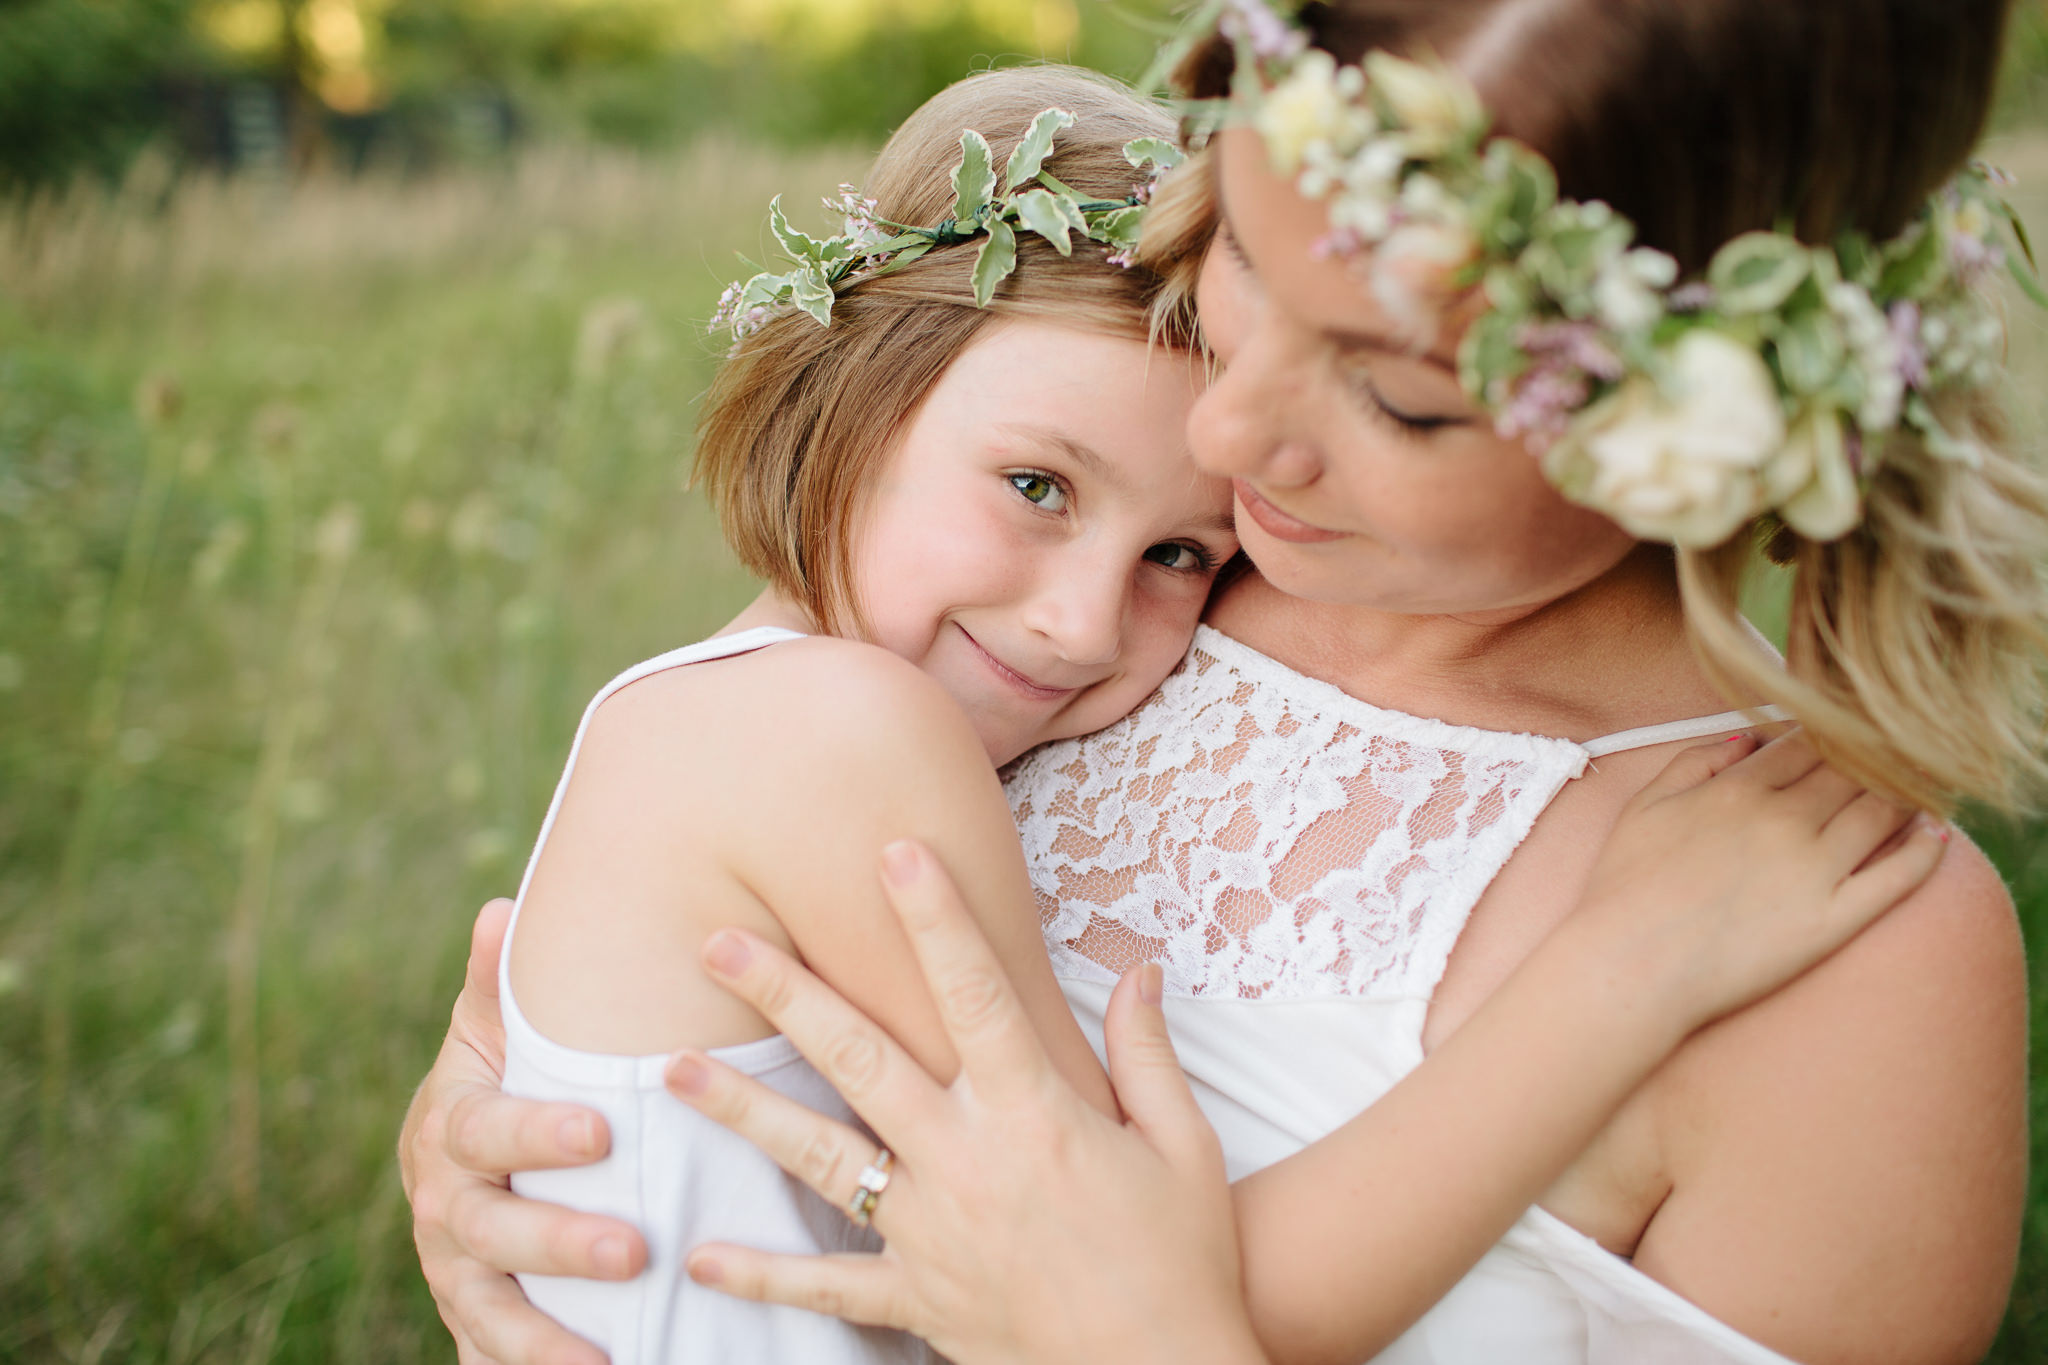 mother and daughter outdoor hug for portrait